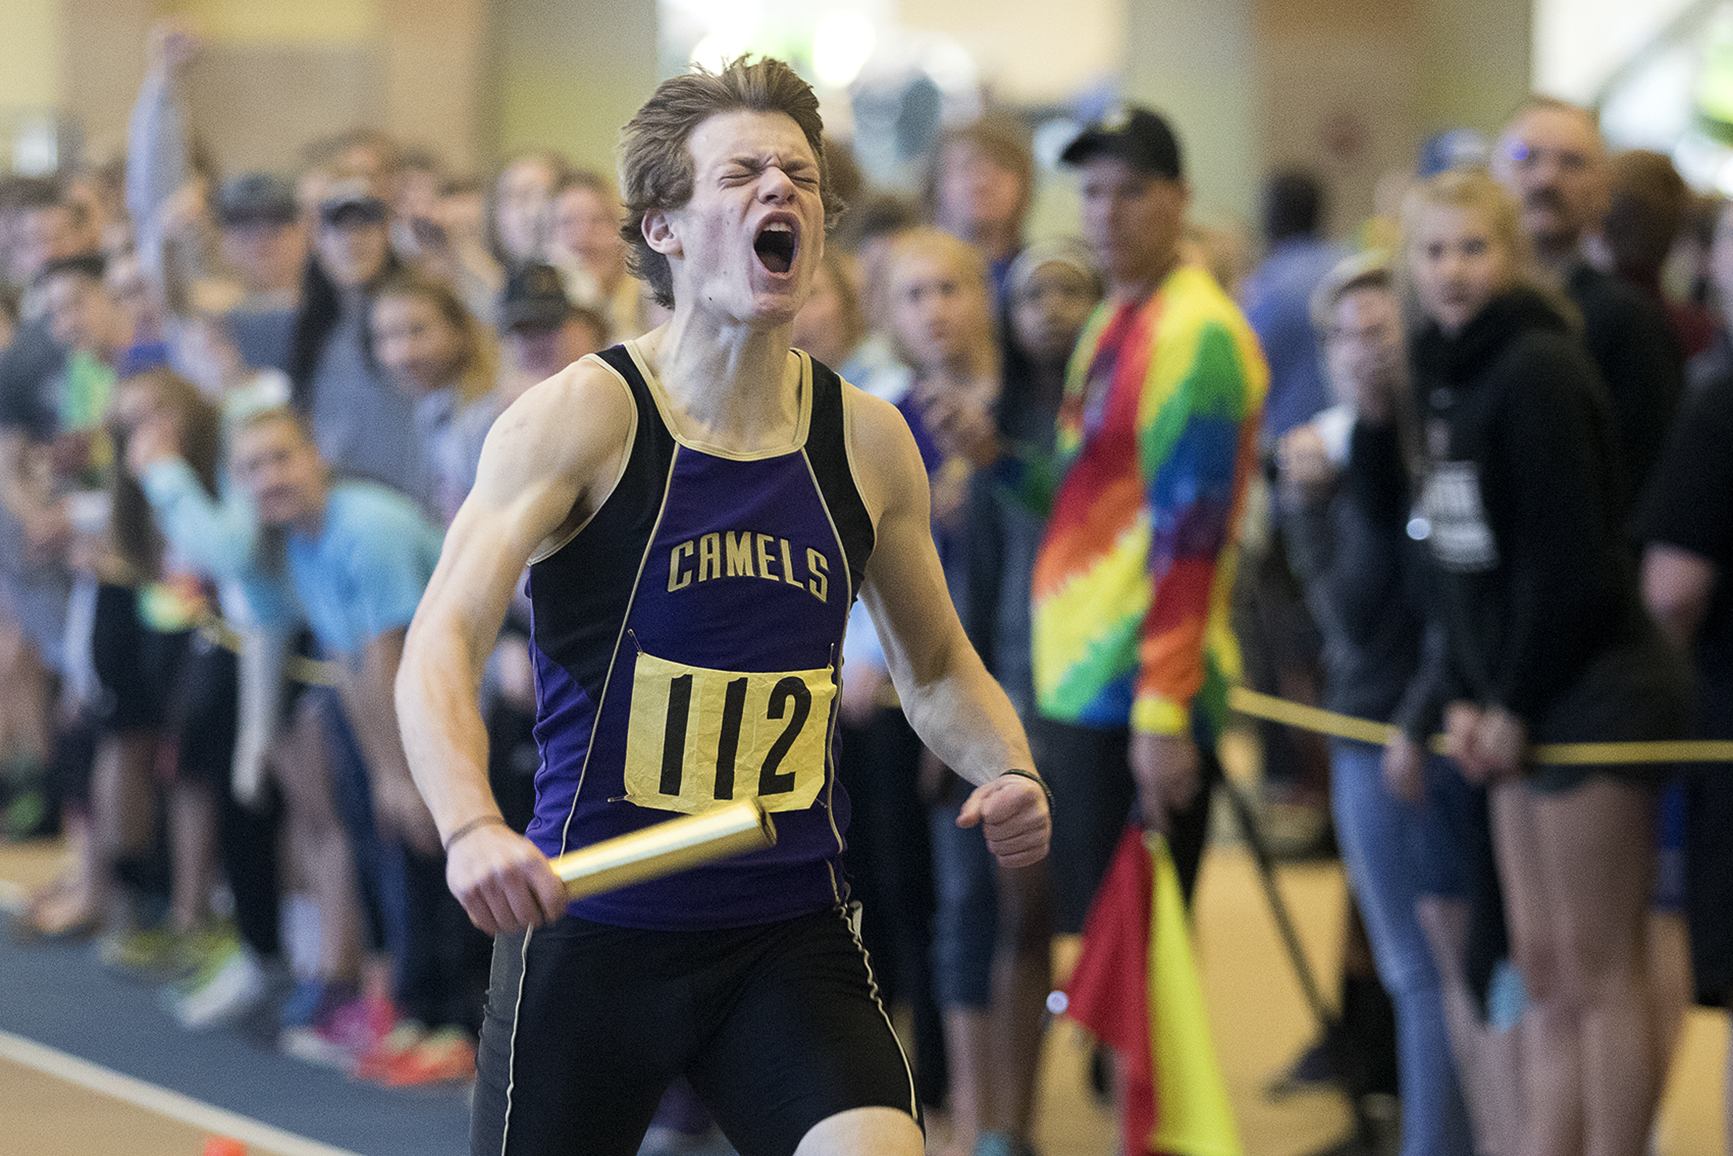 Gillette's Logan Myers celebrates as he crosses the finish line Saturday as the boys 4x400 team wins first place at the 4A Indoor Track Championships at the Recreation Center Field House.